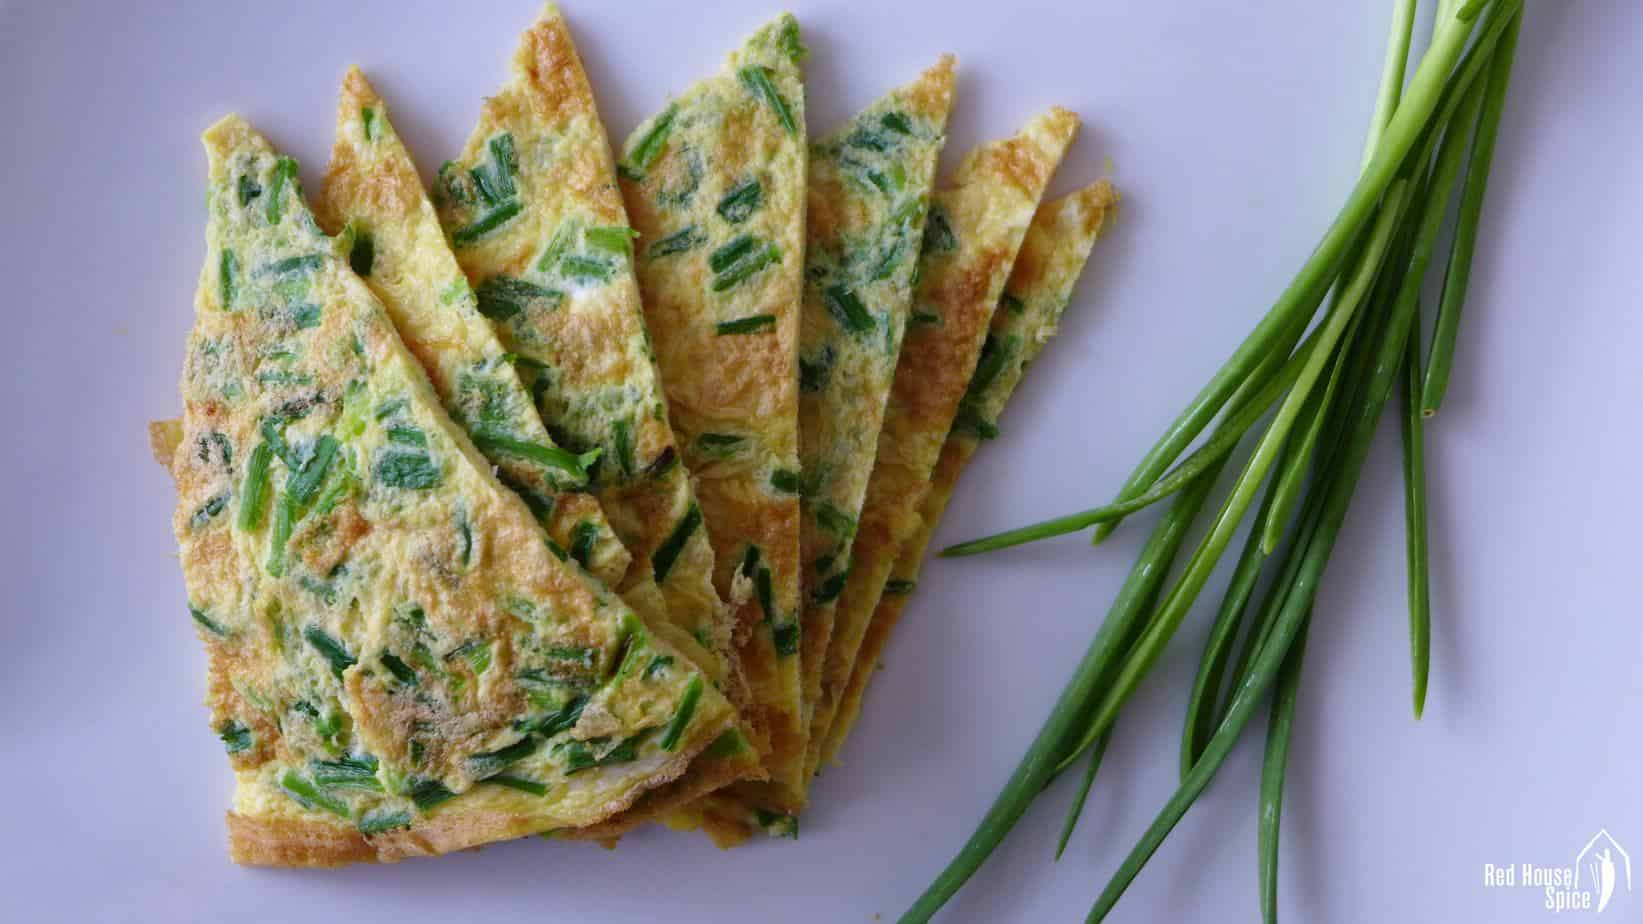 Omelette with homegrown garlic sprouts